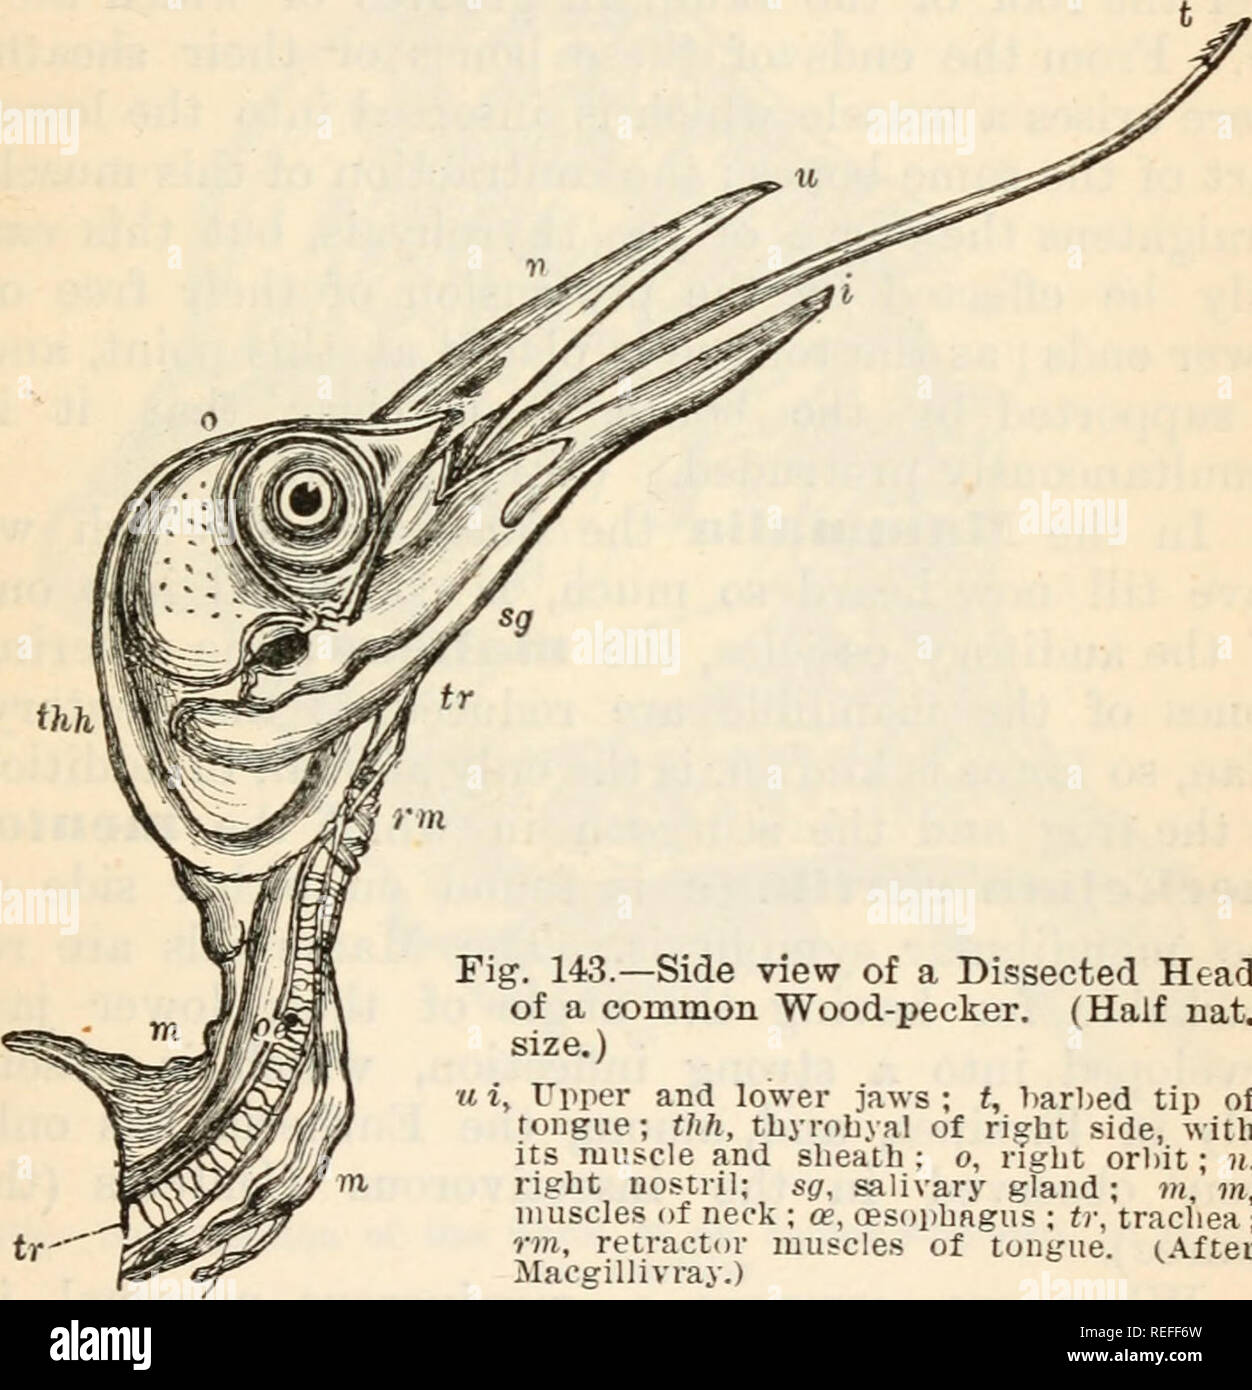 hight resolution of comparative anatomy and physiology chap ix skull of birds which